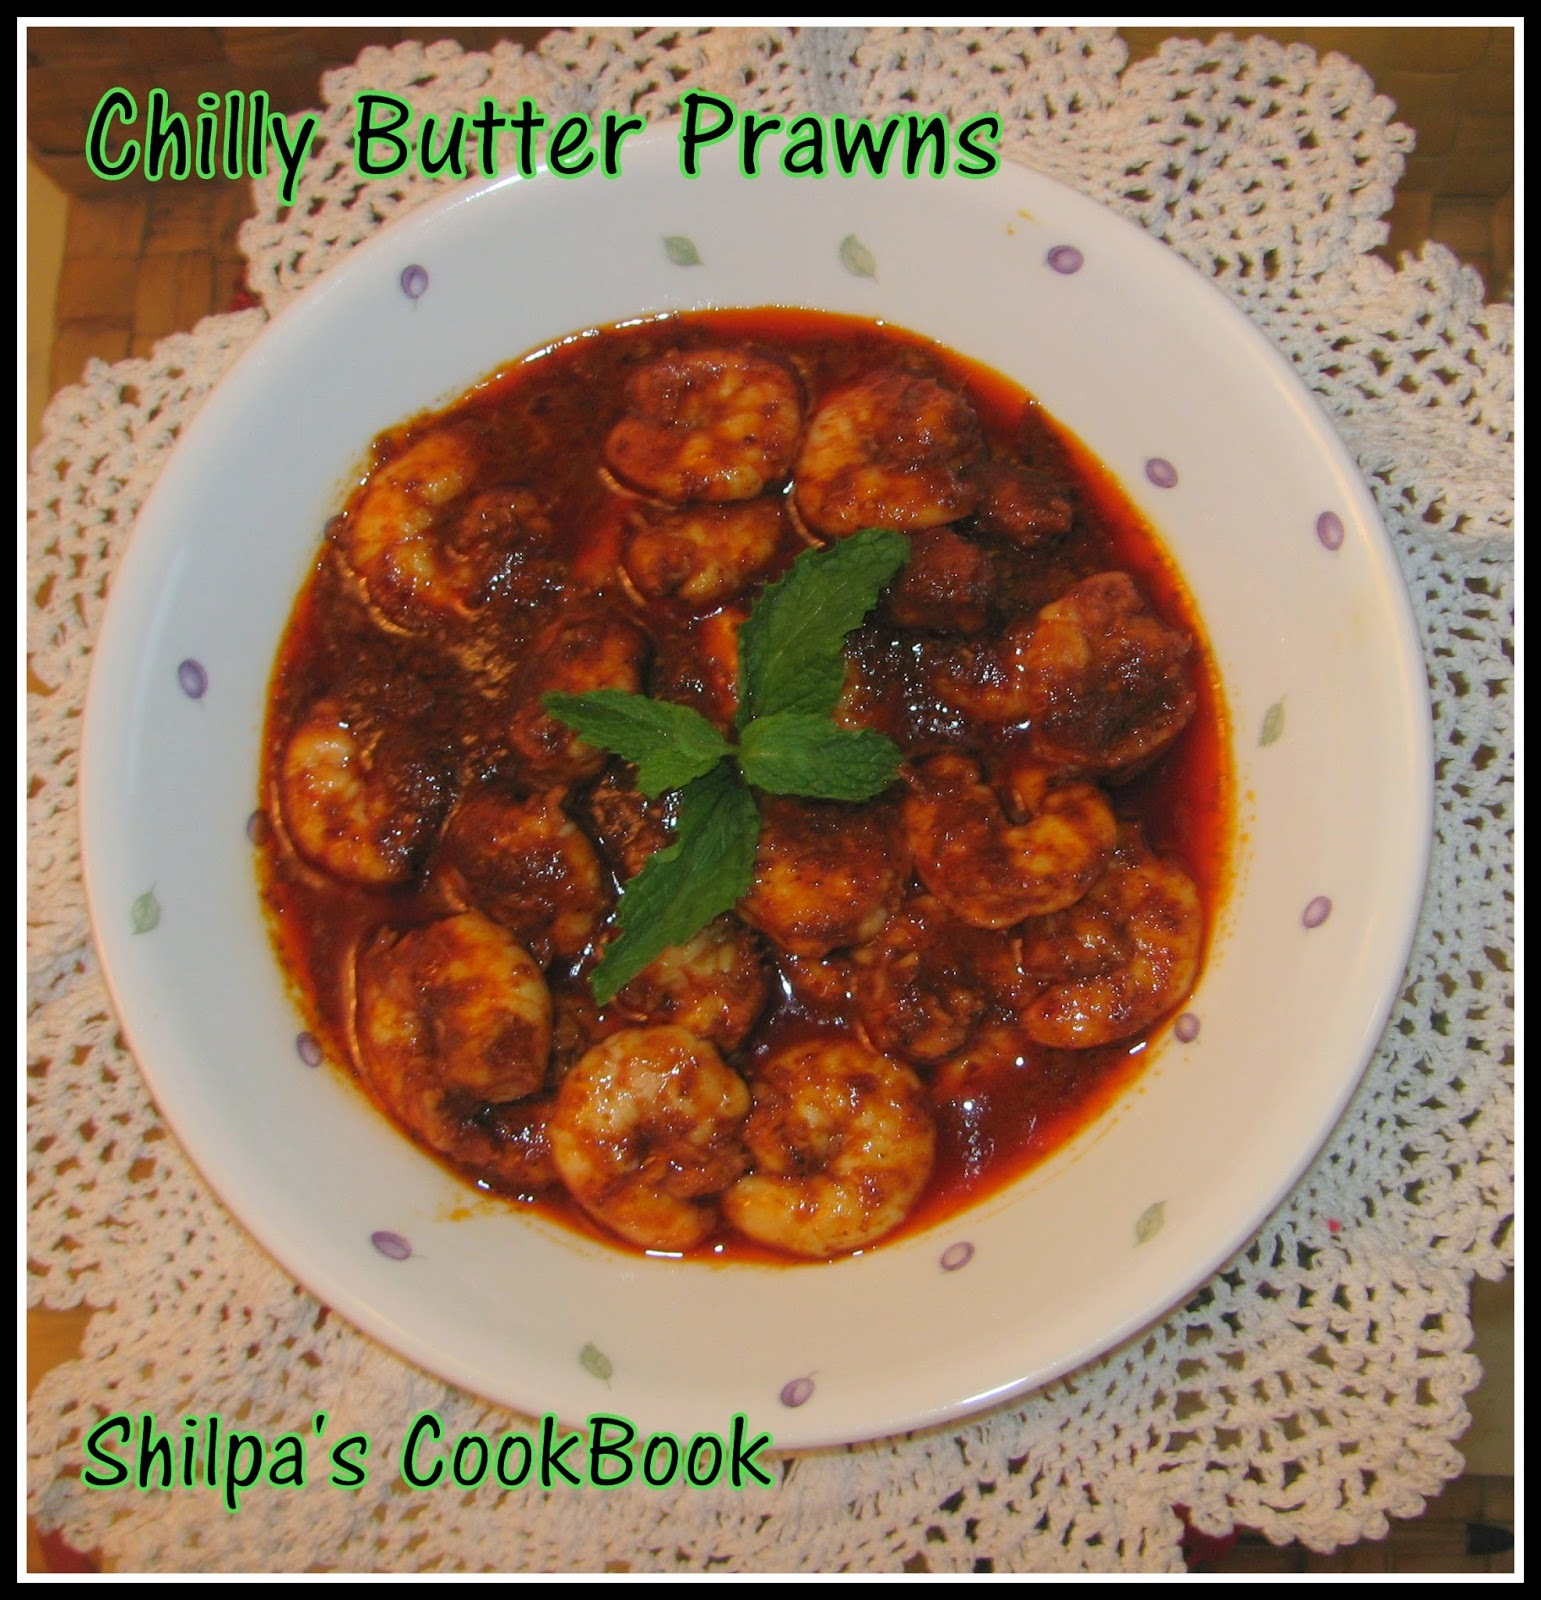 Chilly Butter Prawns